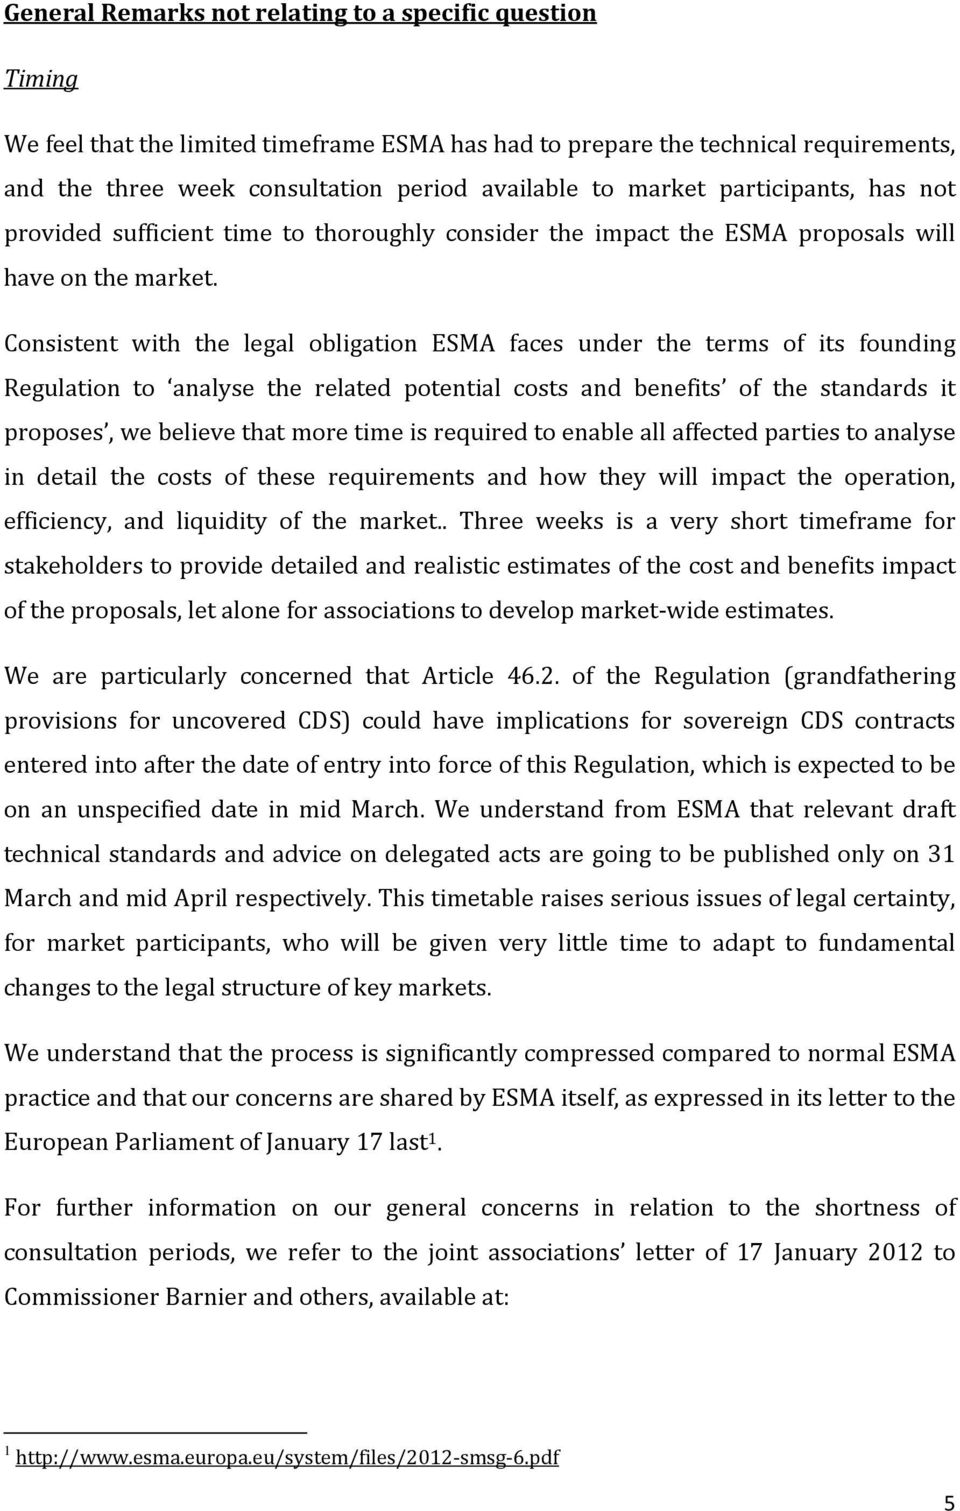 Consistent with the legal obligation ESMA faces under the terms of its founding Regulation to analyse the related potential costs and benefits of the standards it proposes, we believe that more time